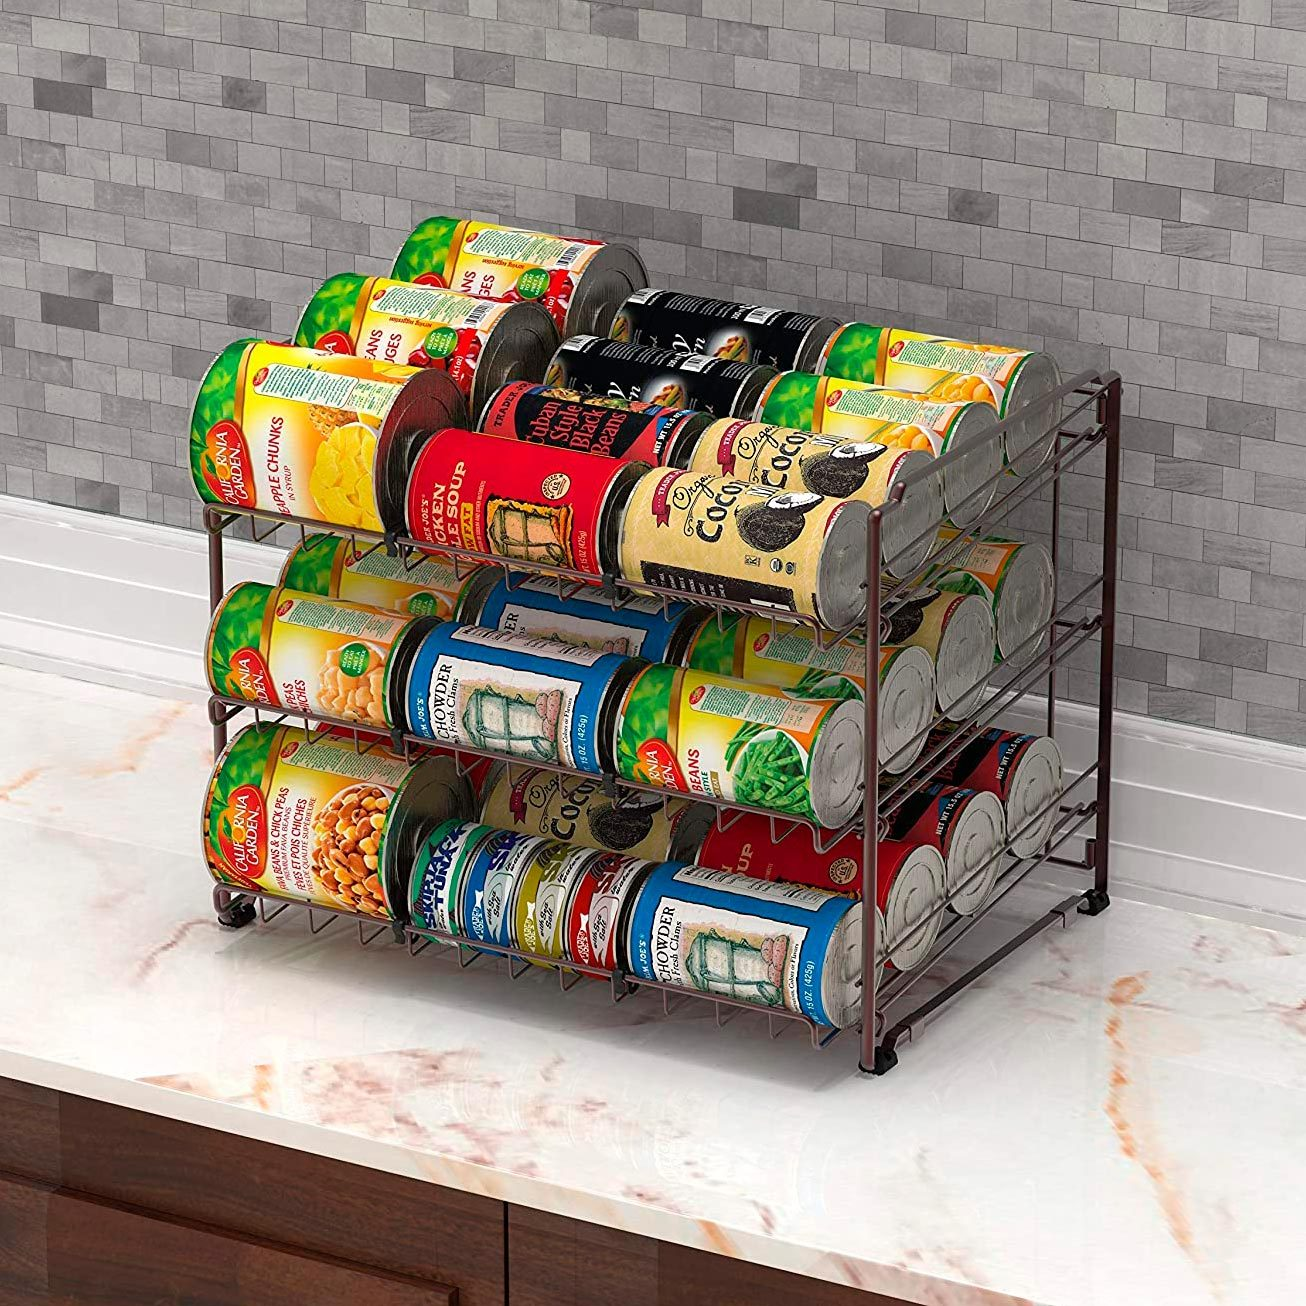 Simple Houseware Stackable Can Rack Organizer